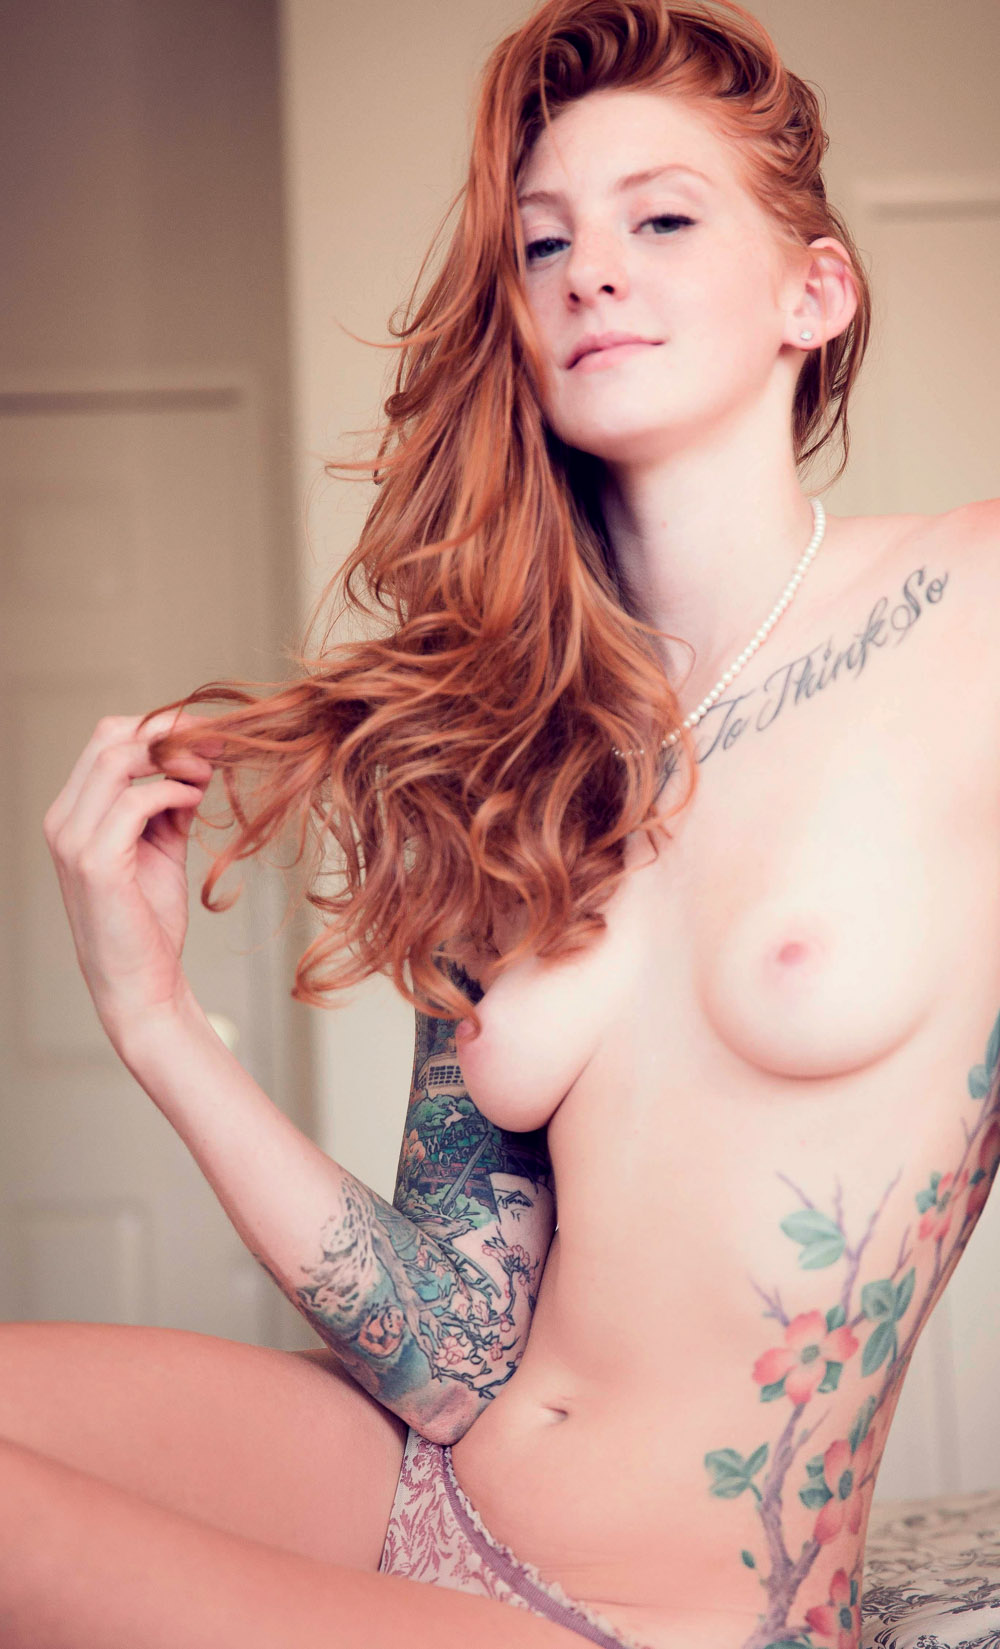 i need a girl for sex Amazingsmile, Gorgeous, Pierecednose, Prettyface, Redhead, Sexy, Skinnywaist, Tattoos, Thighhighs